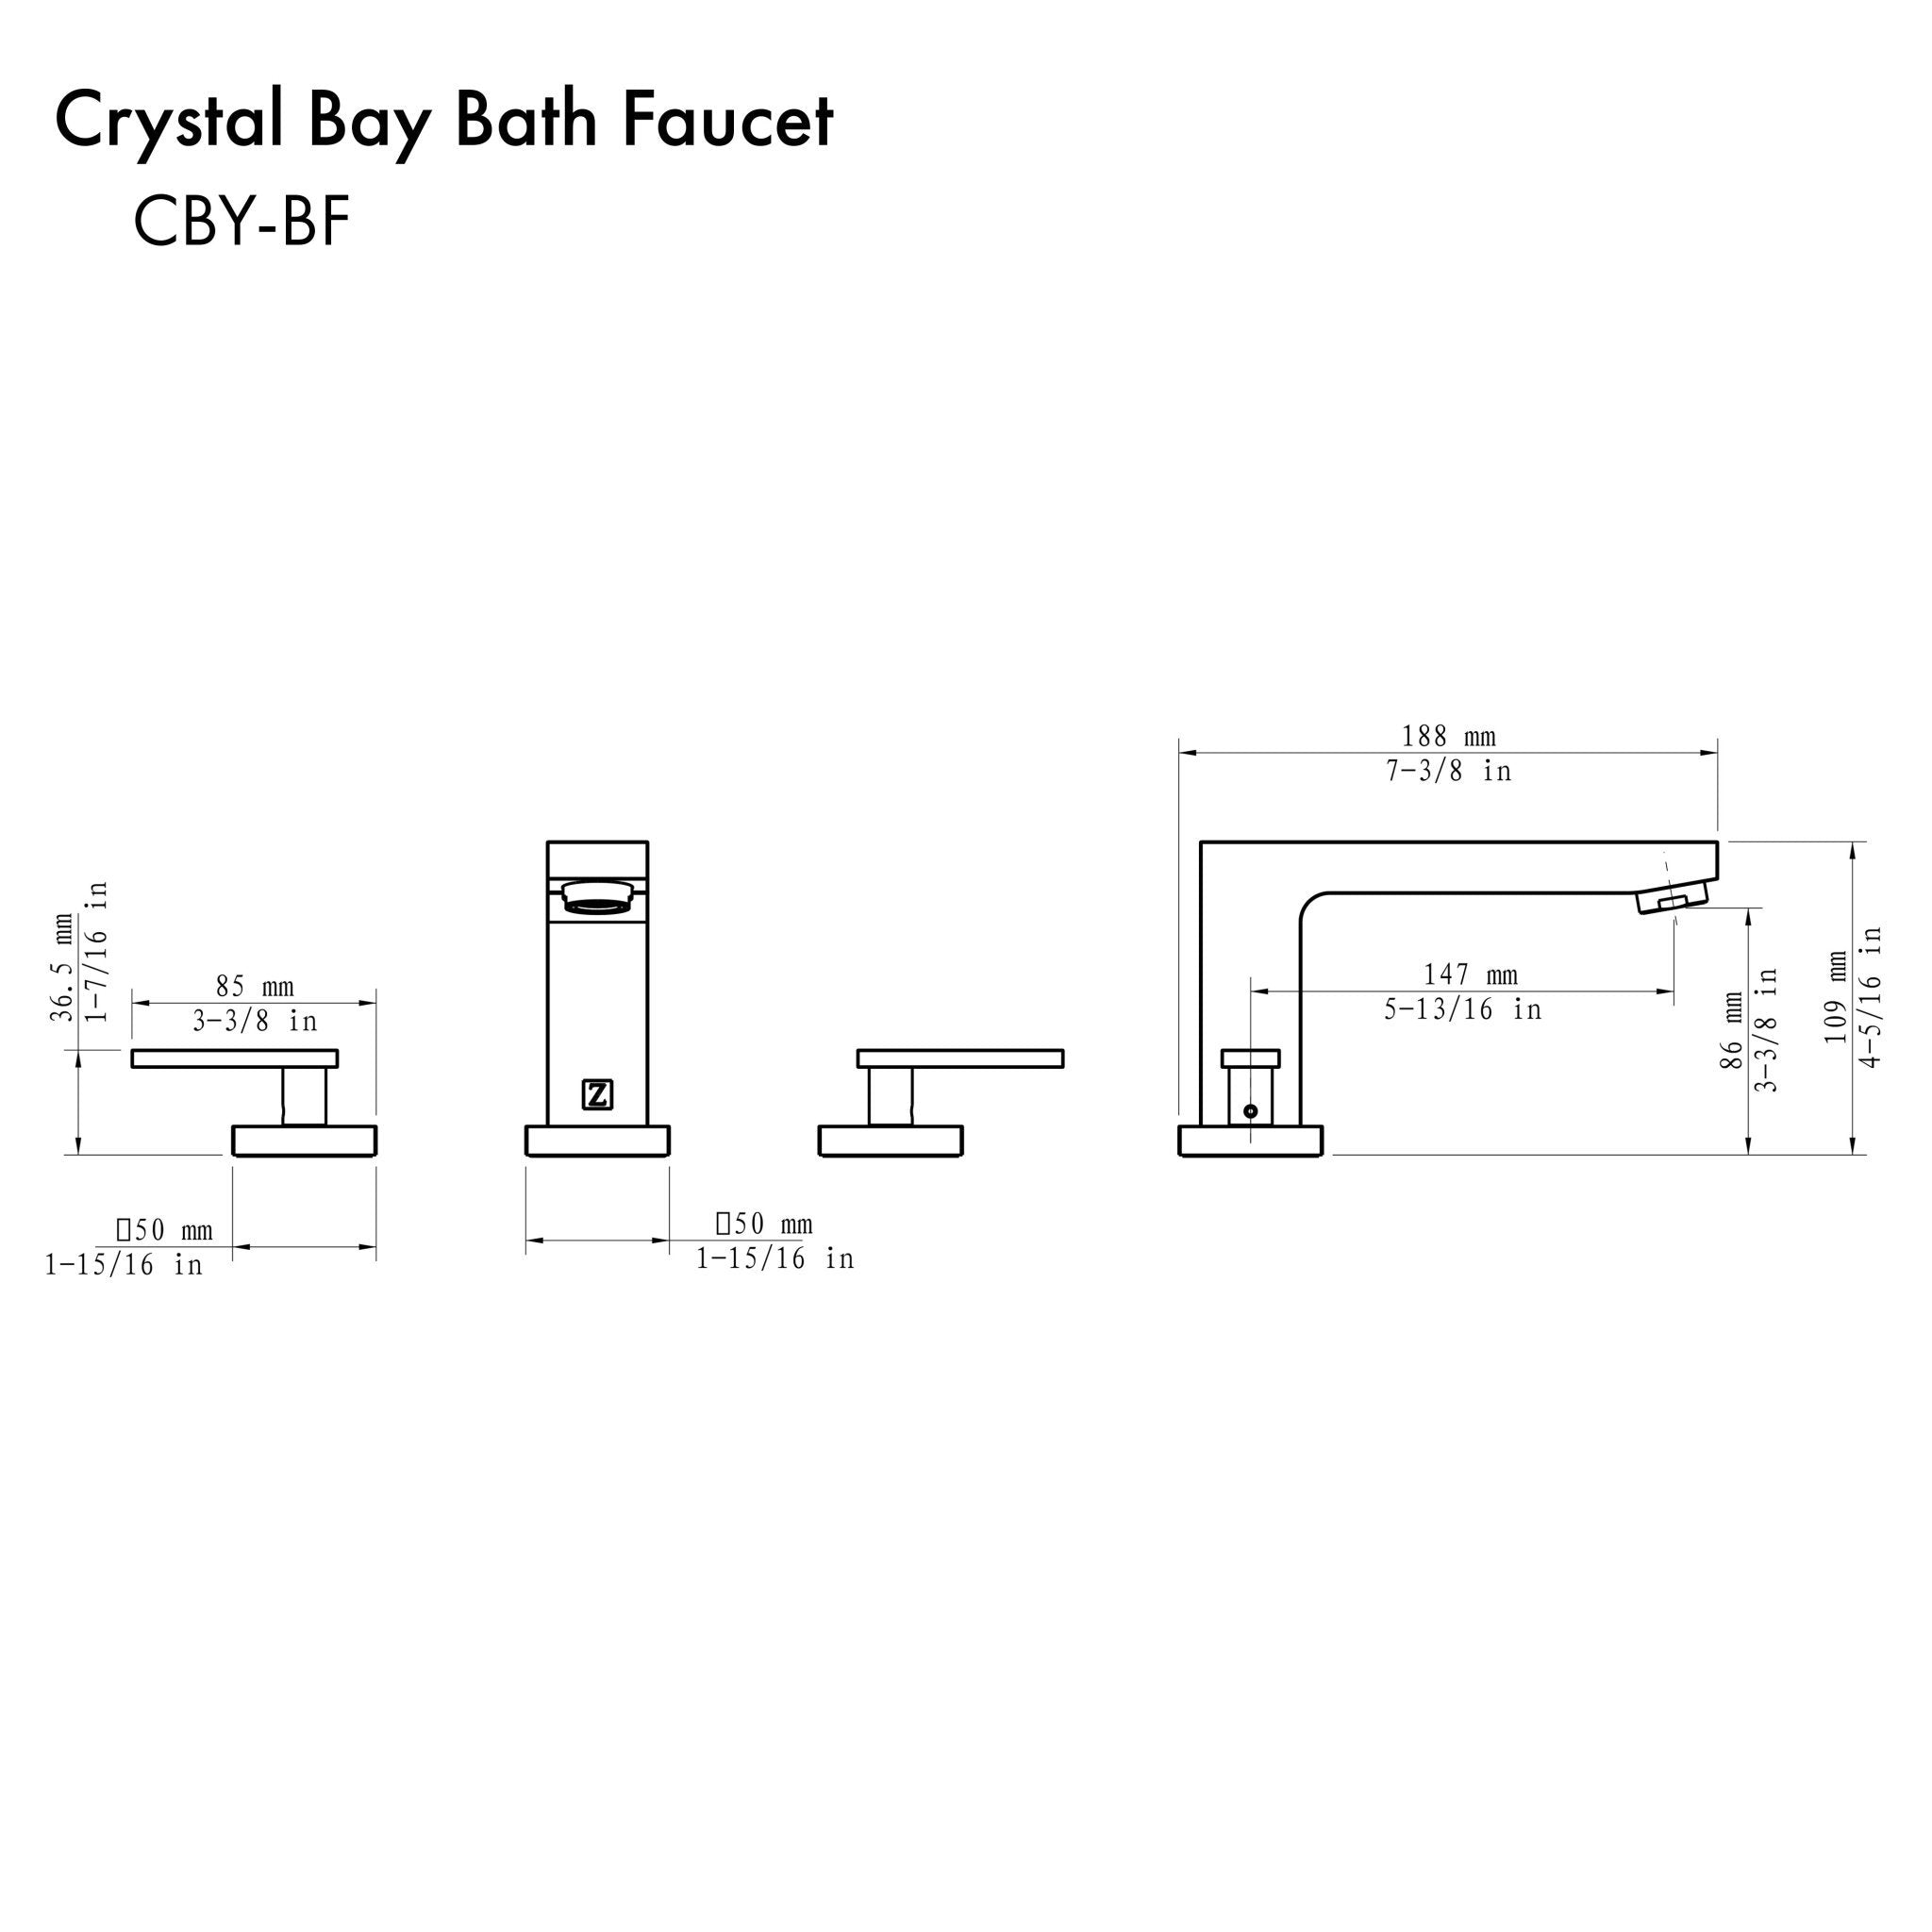 ZLINE Crystal Bay Bath Faucet with Color Options (CBY-BF)